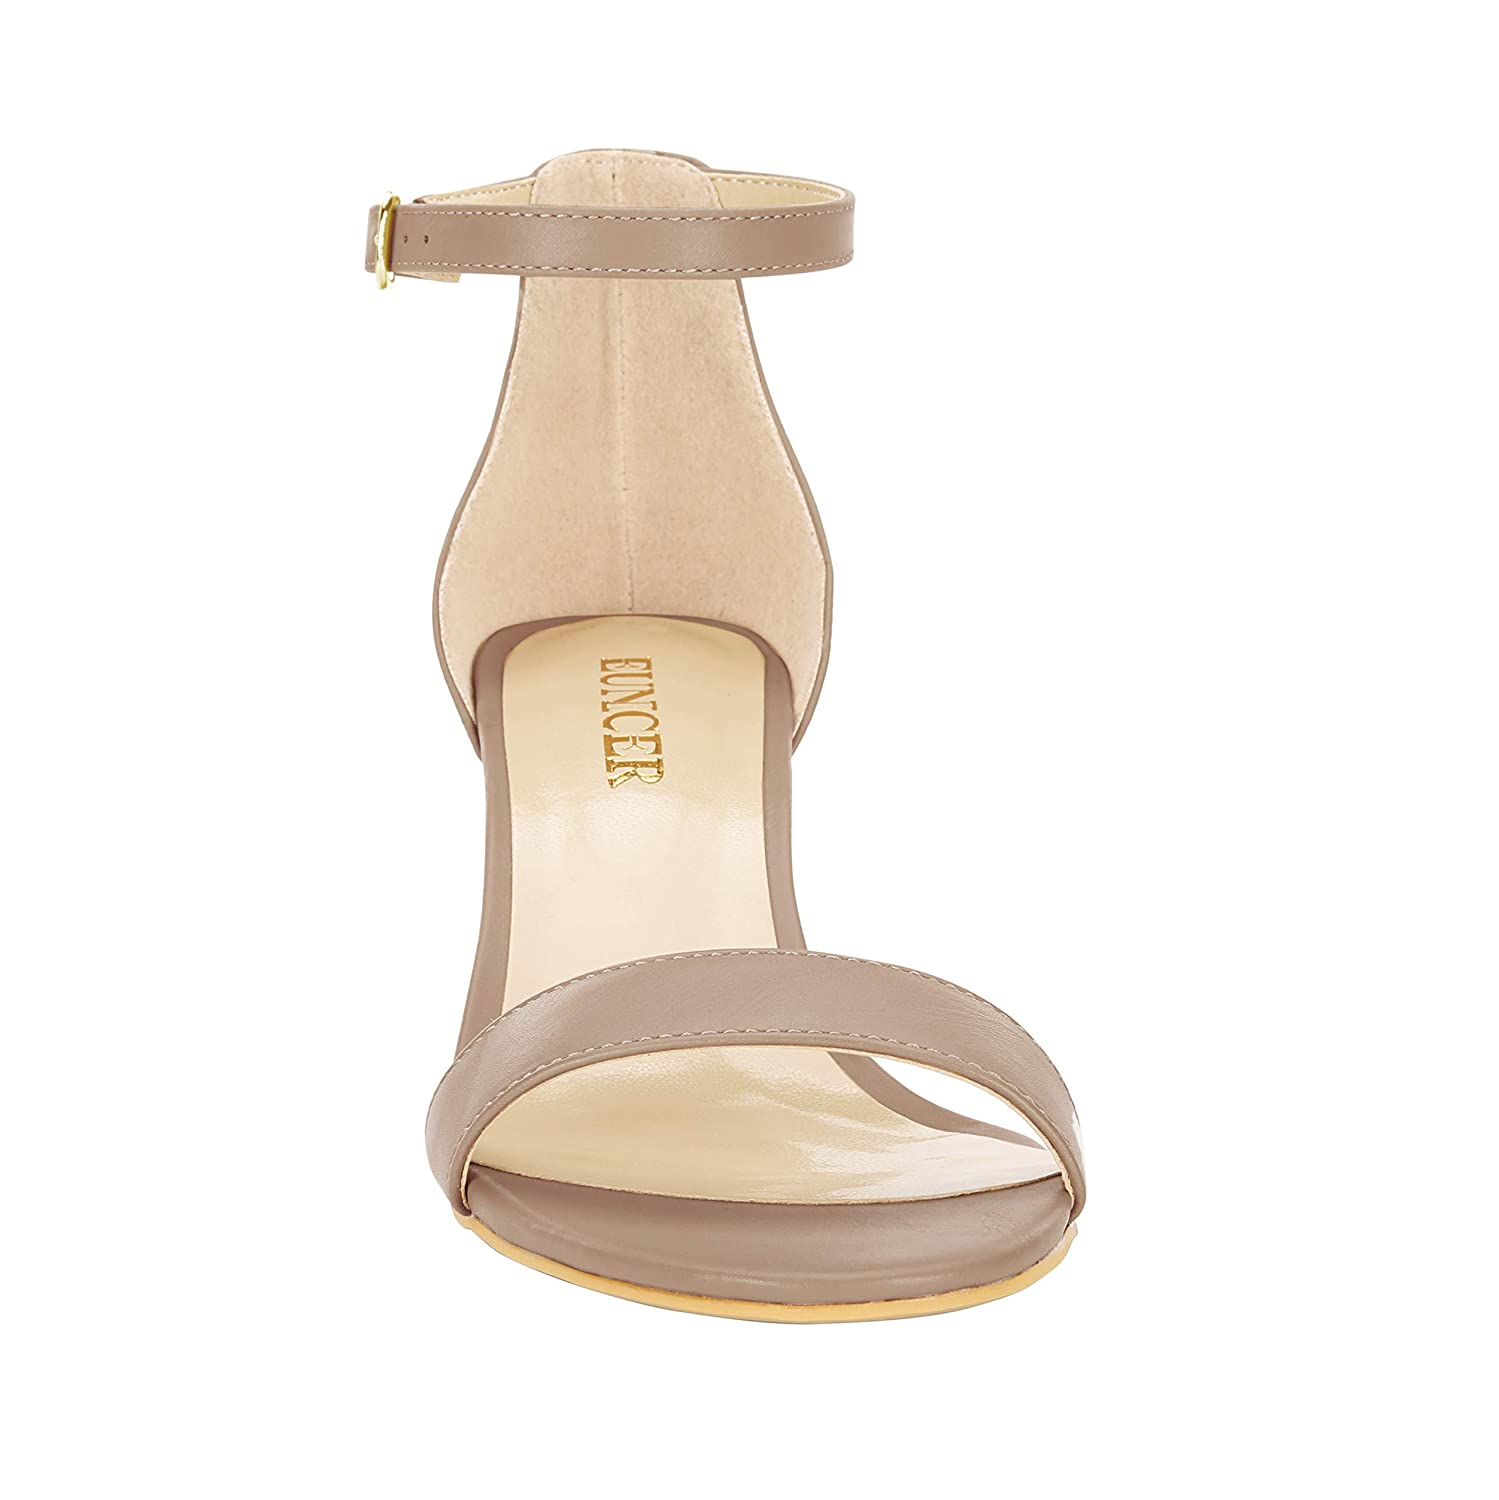 521badede2 Eunicer Womens Single Band Classic Chunky Block Low Heel Sandals with Ankle  Strap Dress Shoes ...